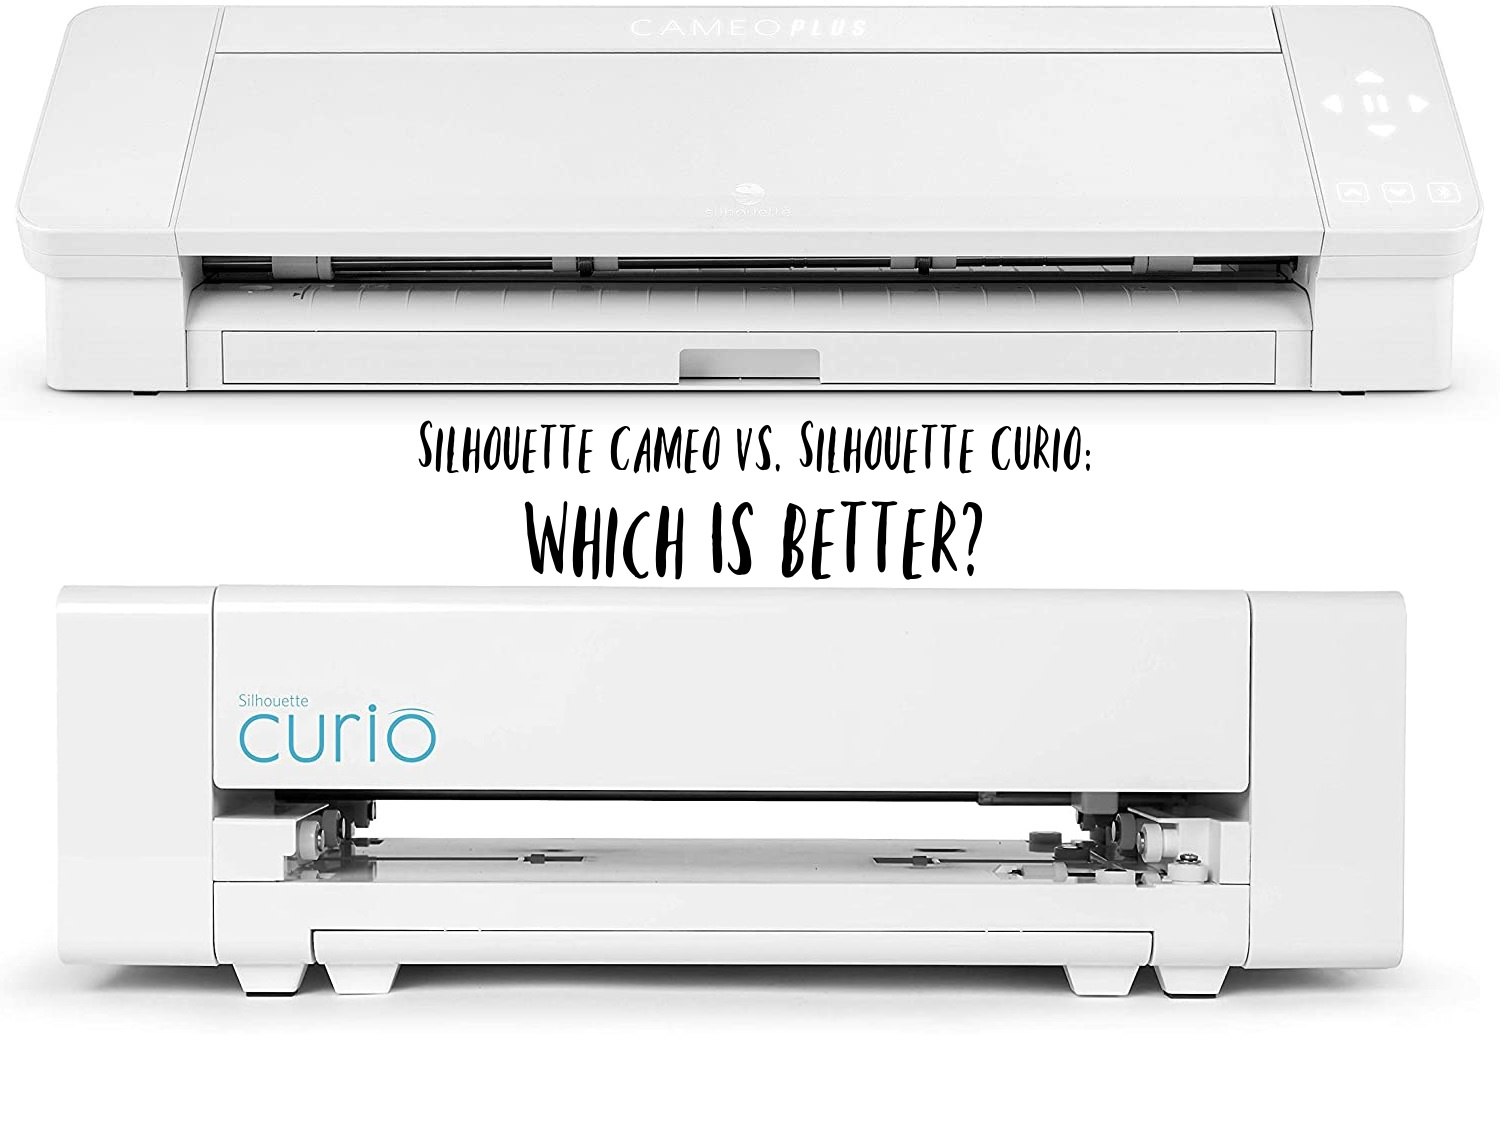 Silhouette cameo vs silhouette curio which is better